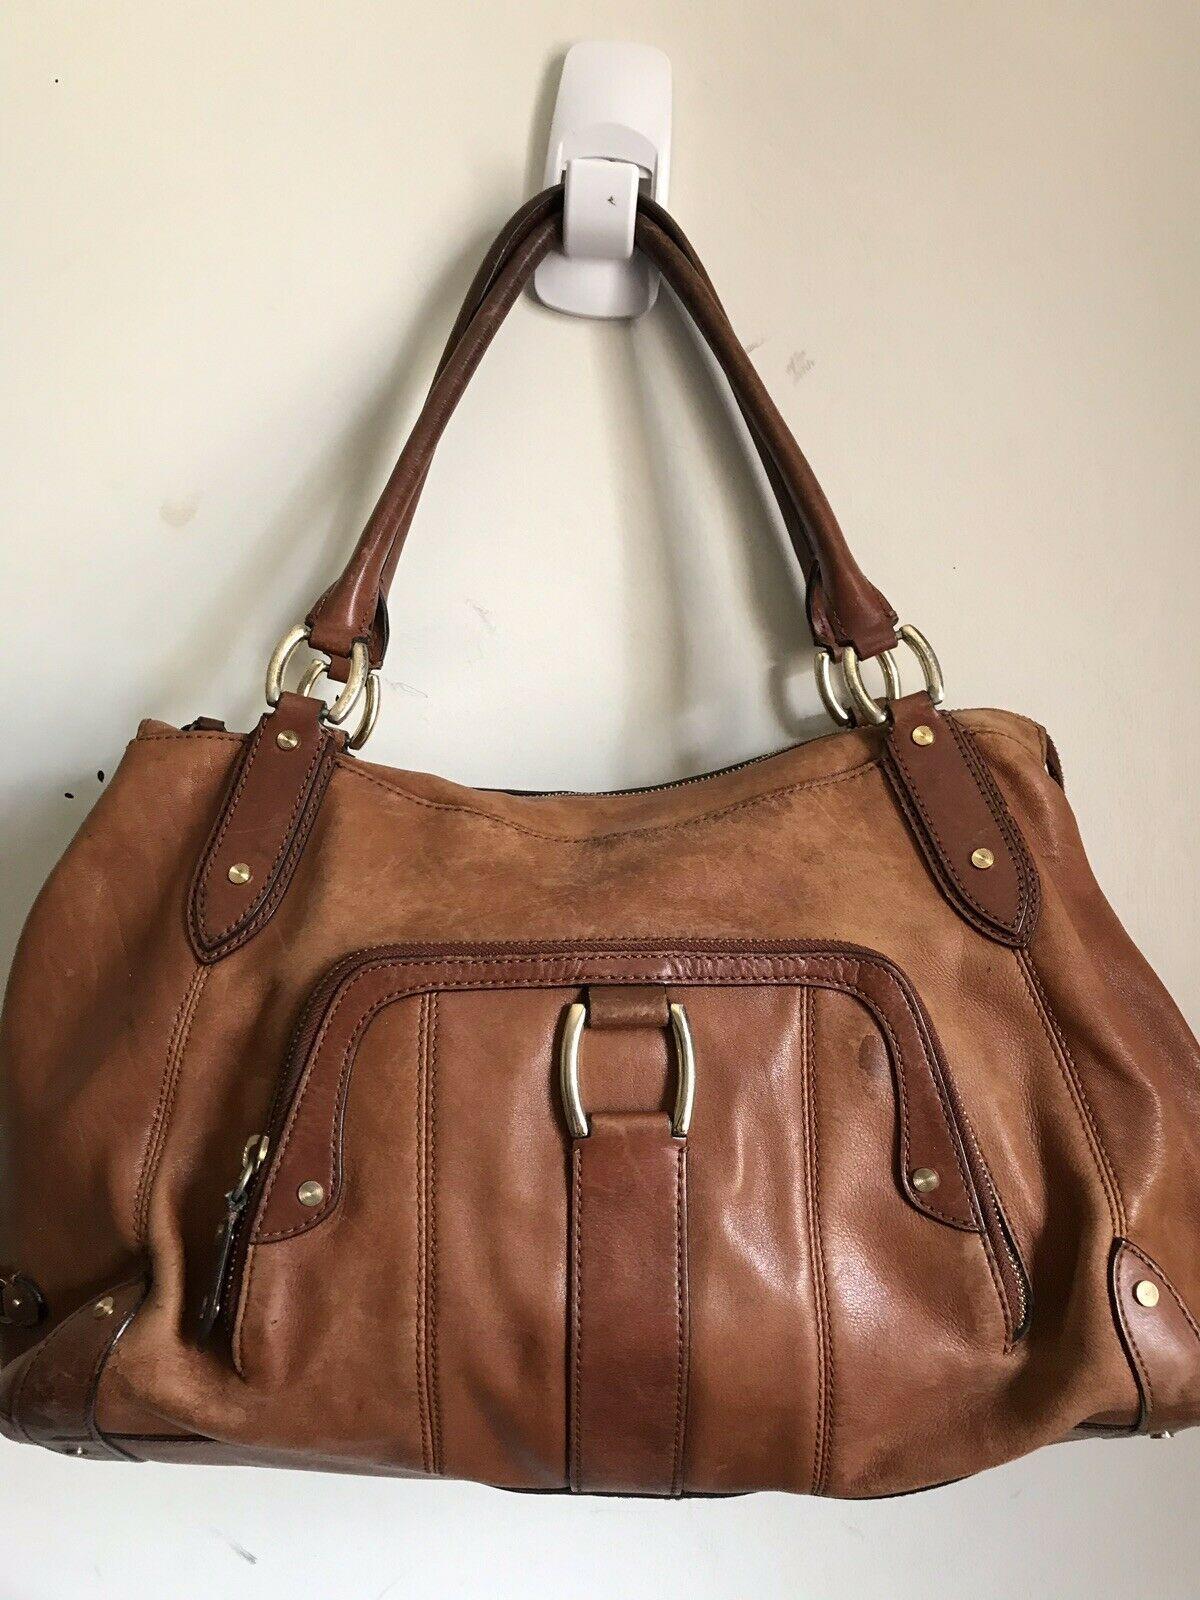 COLE HAAN Tan leather handbag